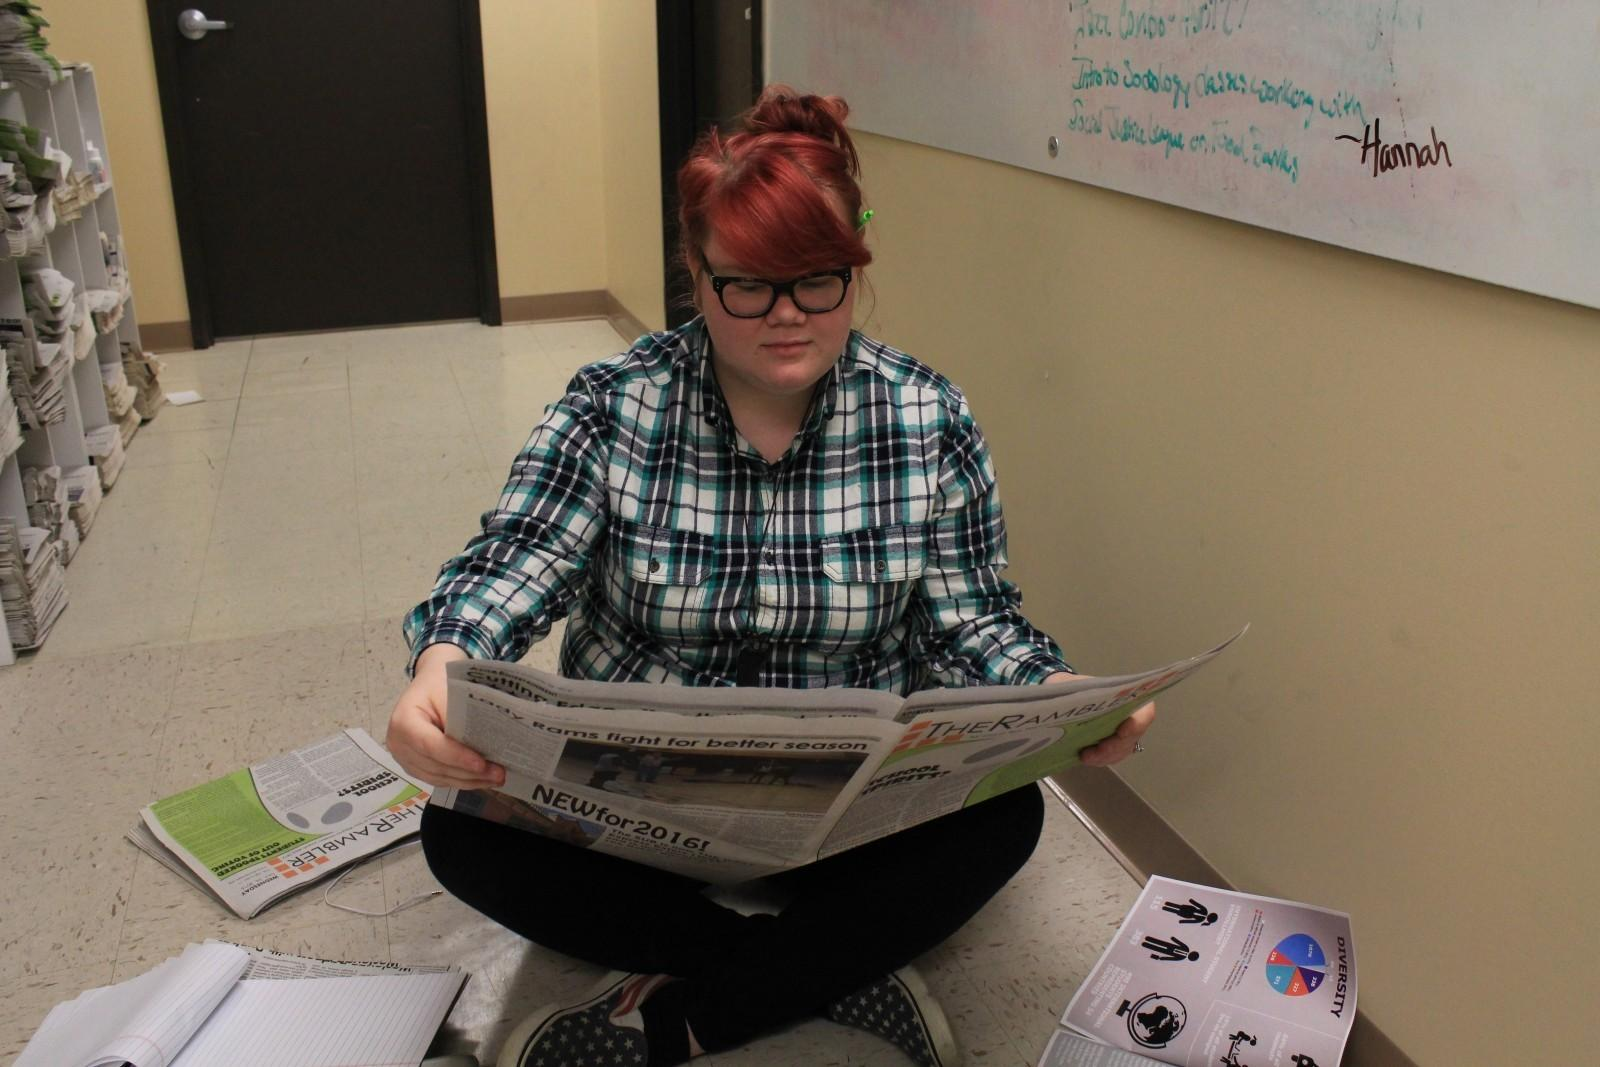 New Rambler editor hopes to inspire